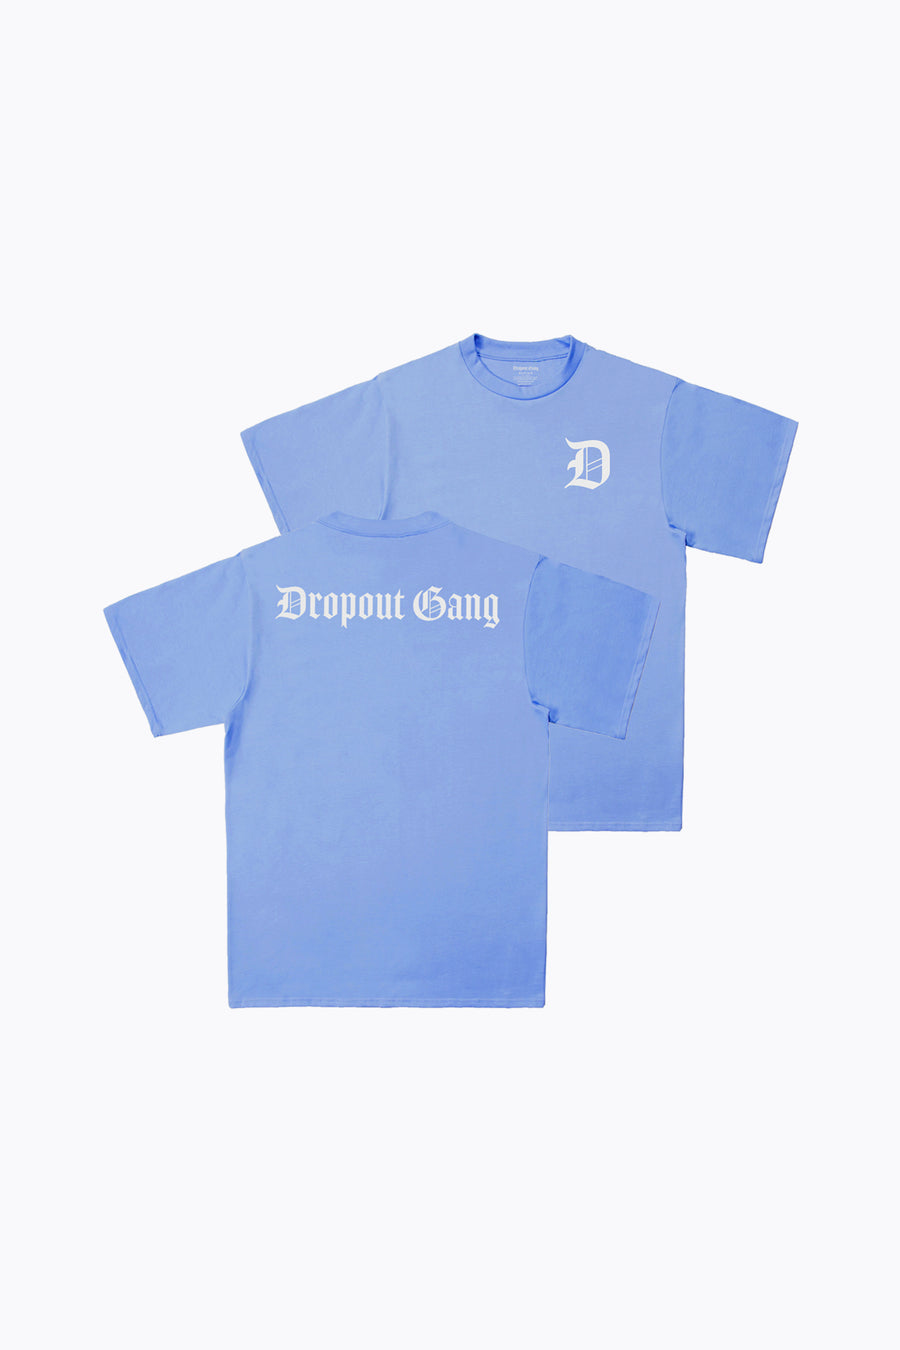 Dropout Gang Light Blue Tee